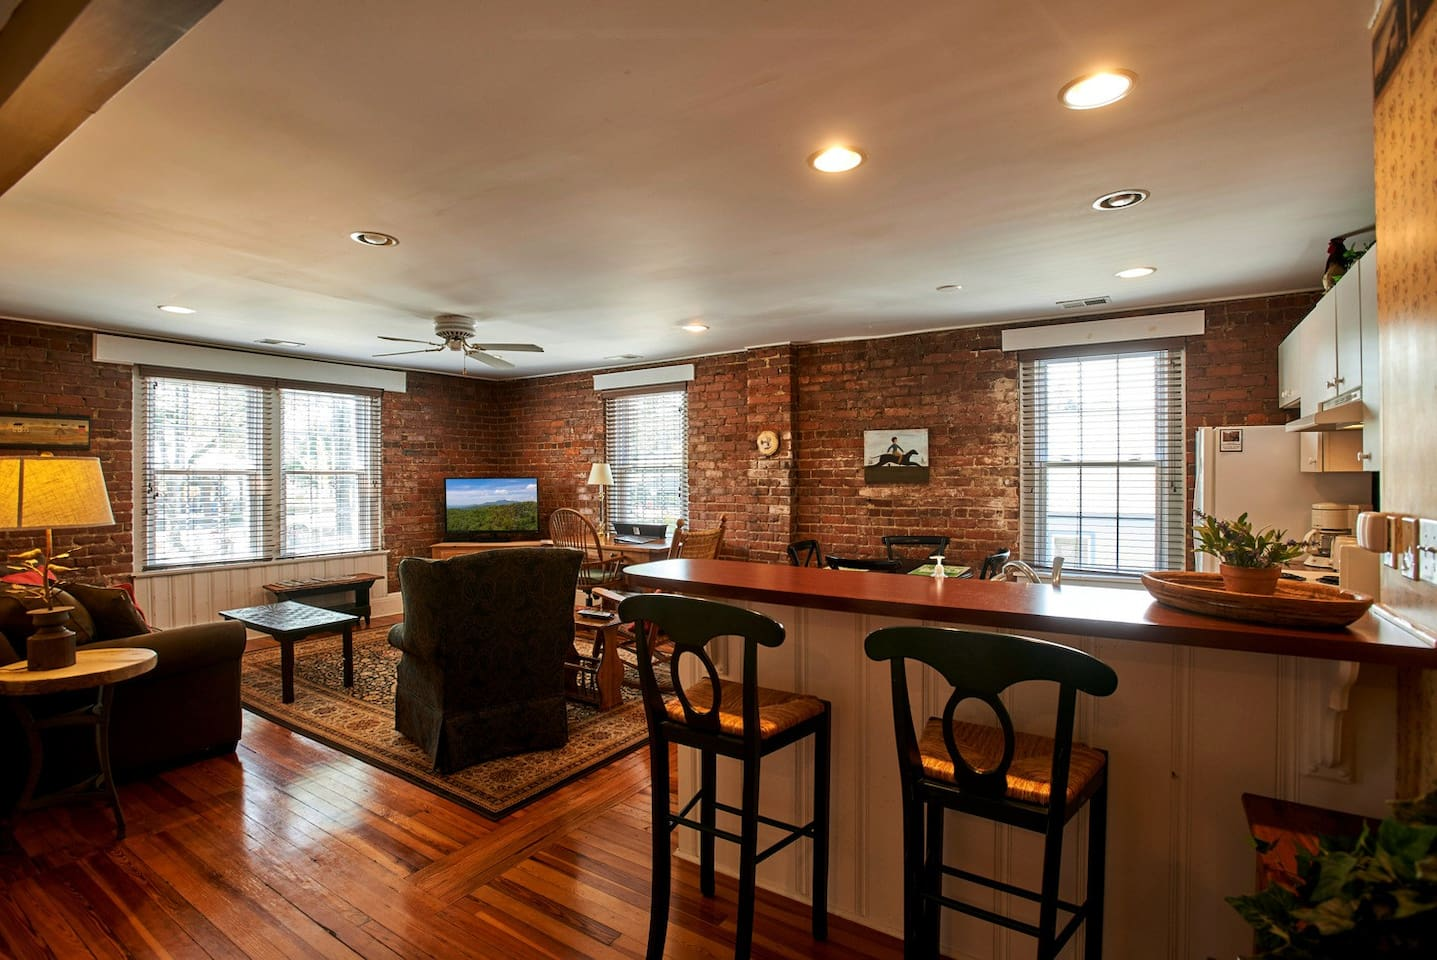 Charming apartment with exposed brick walls